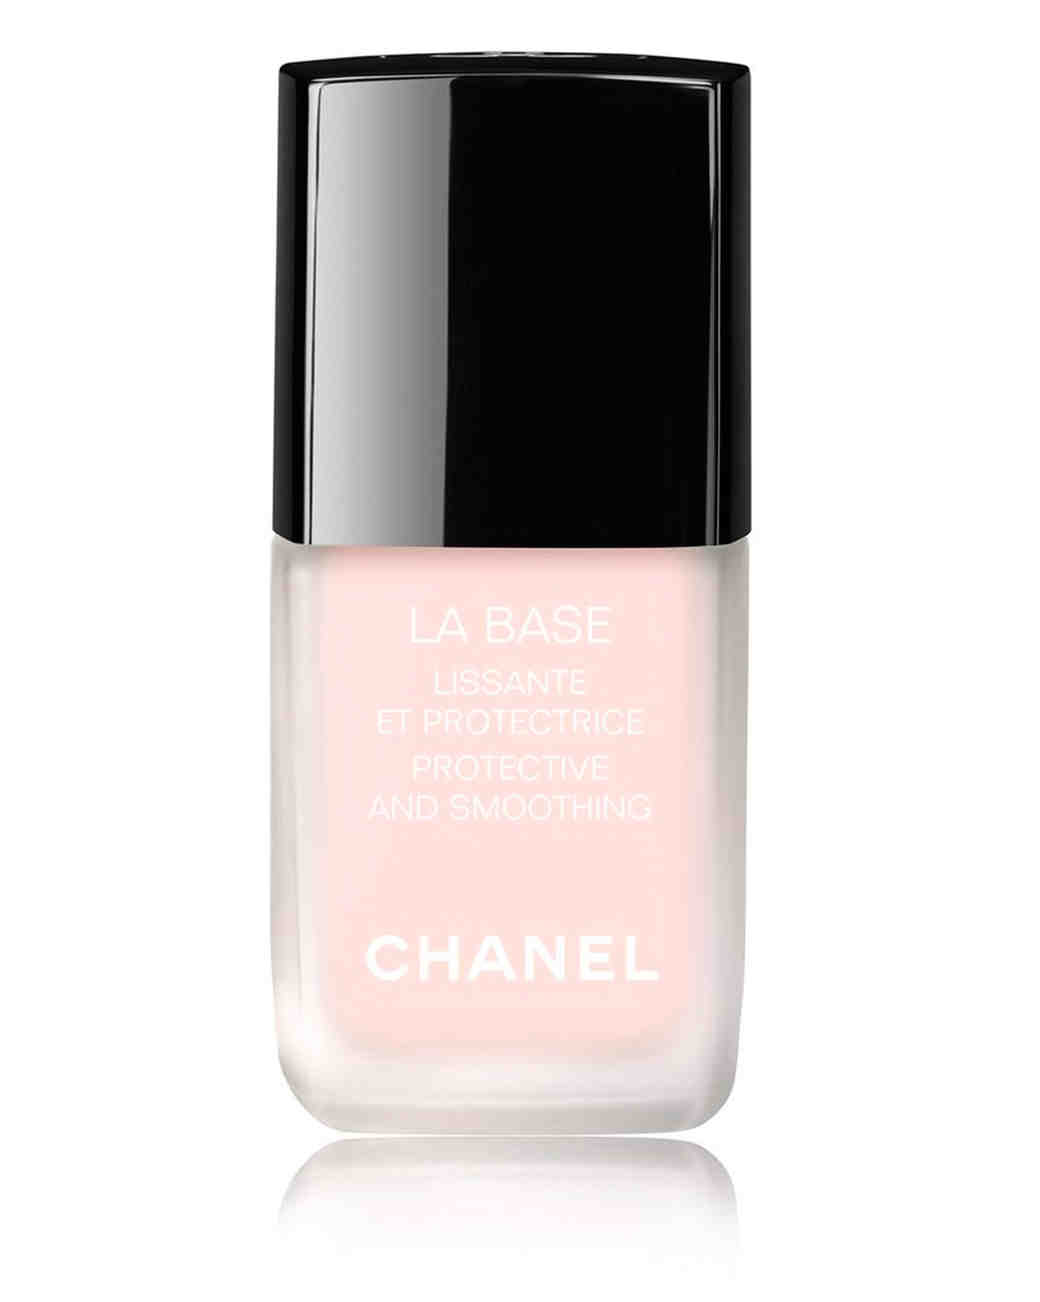 beauty-boundaries-chanel-la-base-0915.jpg